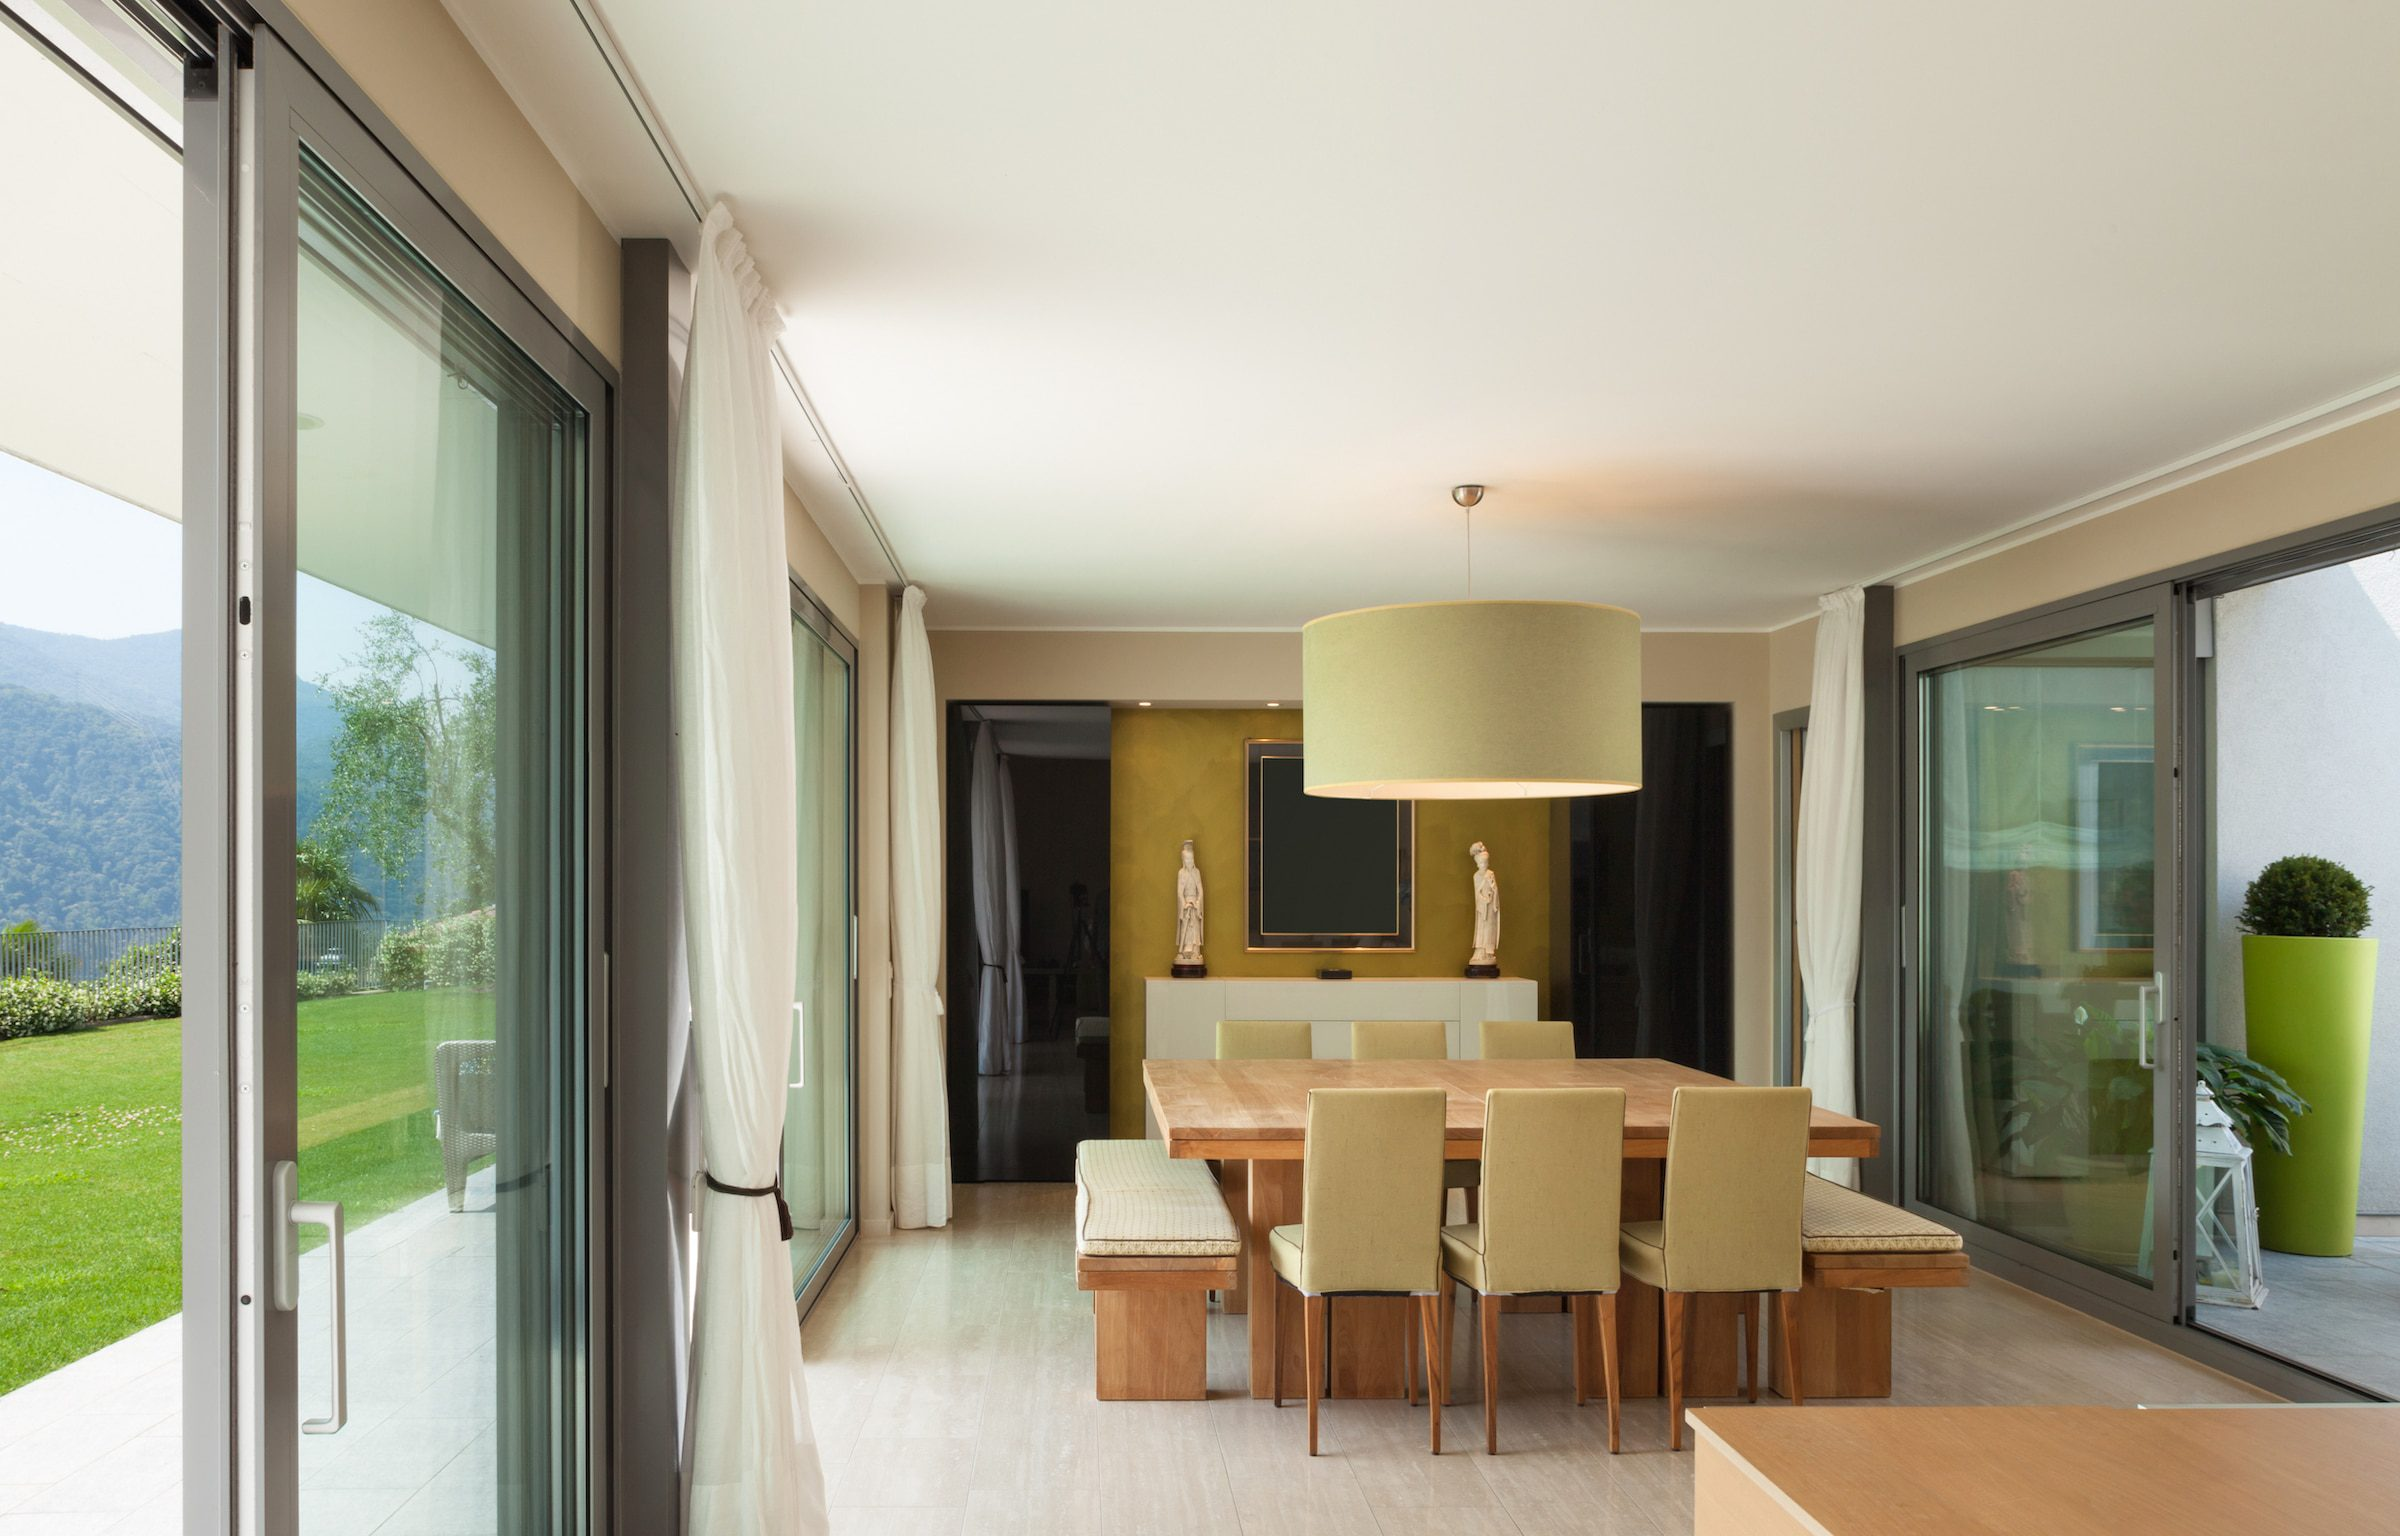 hybrid windows and doors in a luxury lounge setting